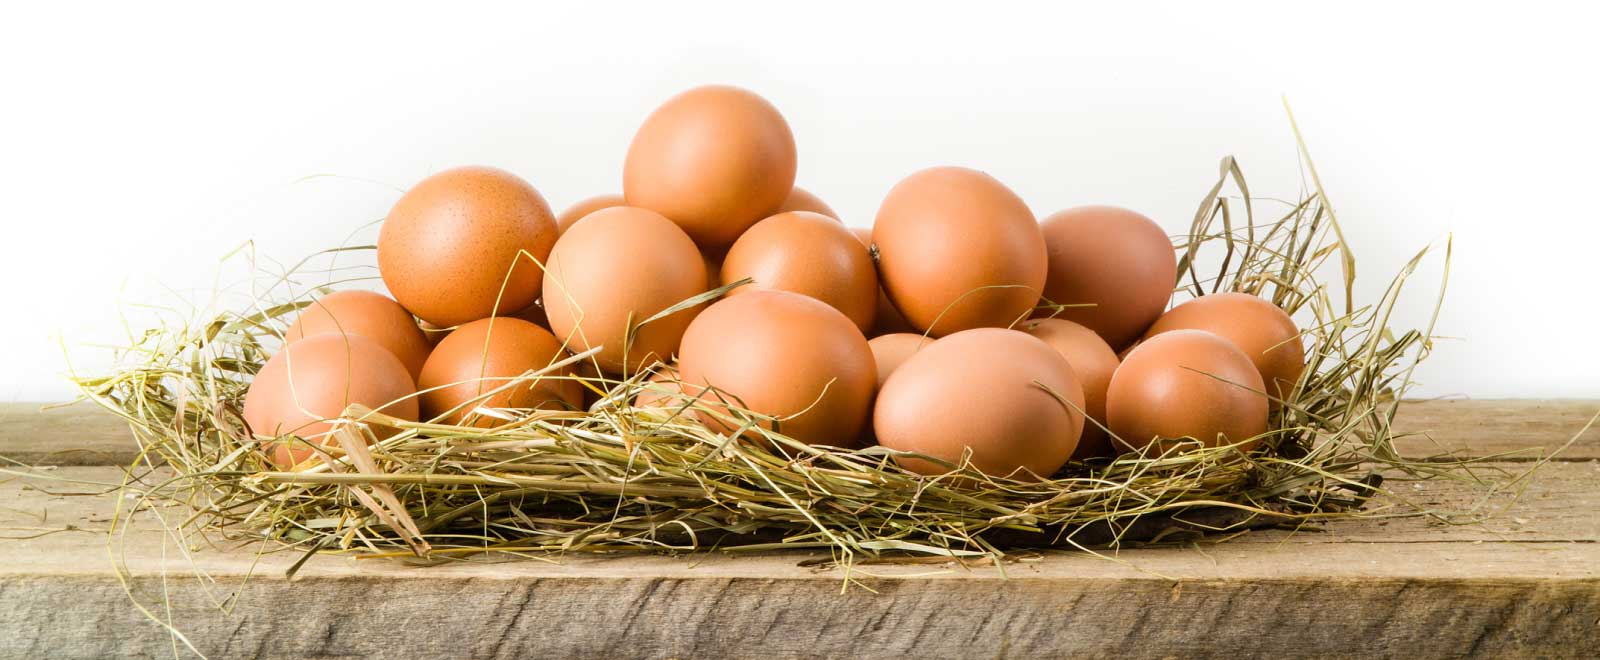 eggs in a pile of straw